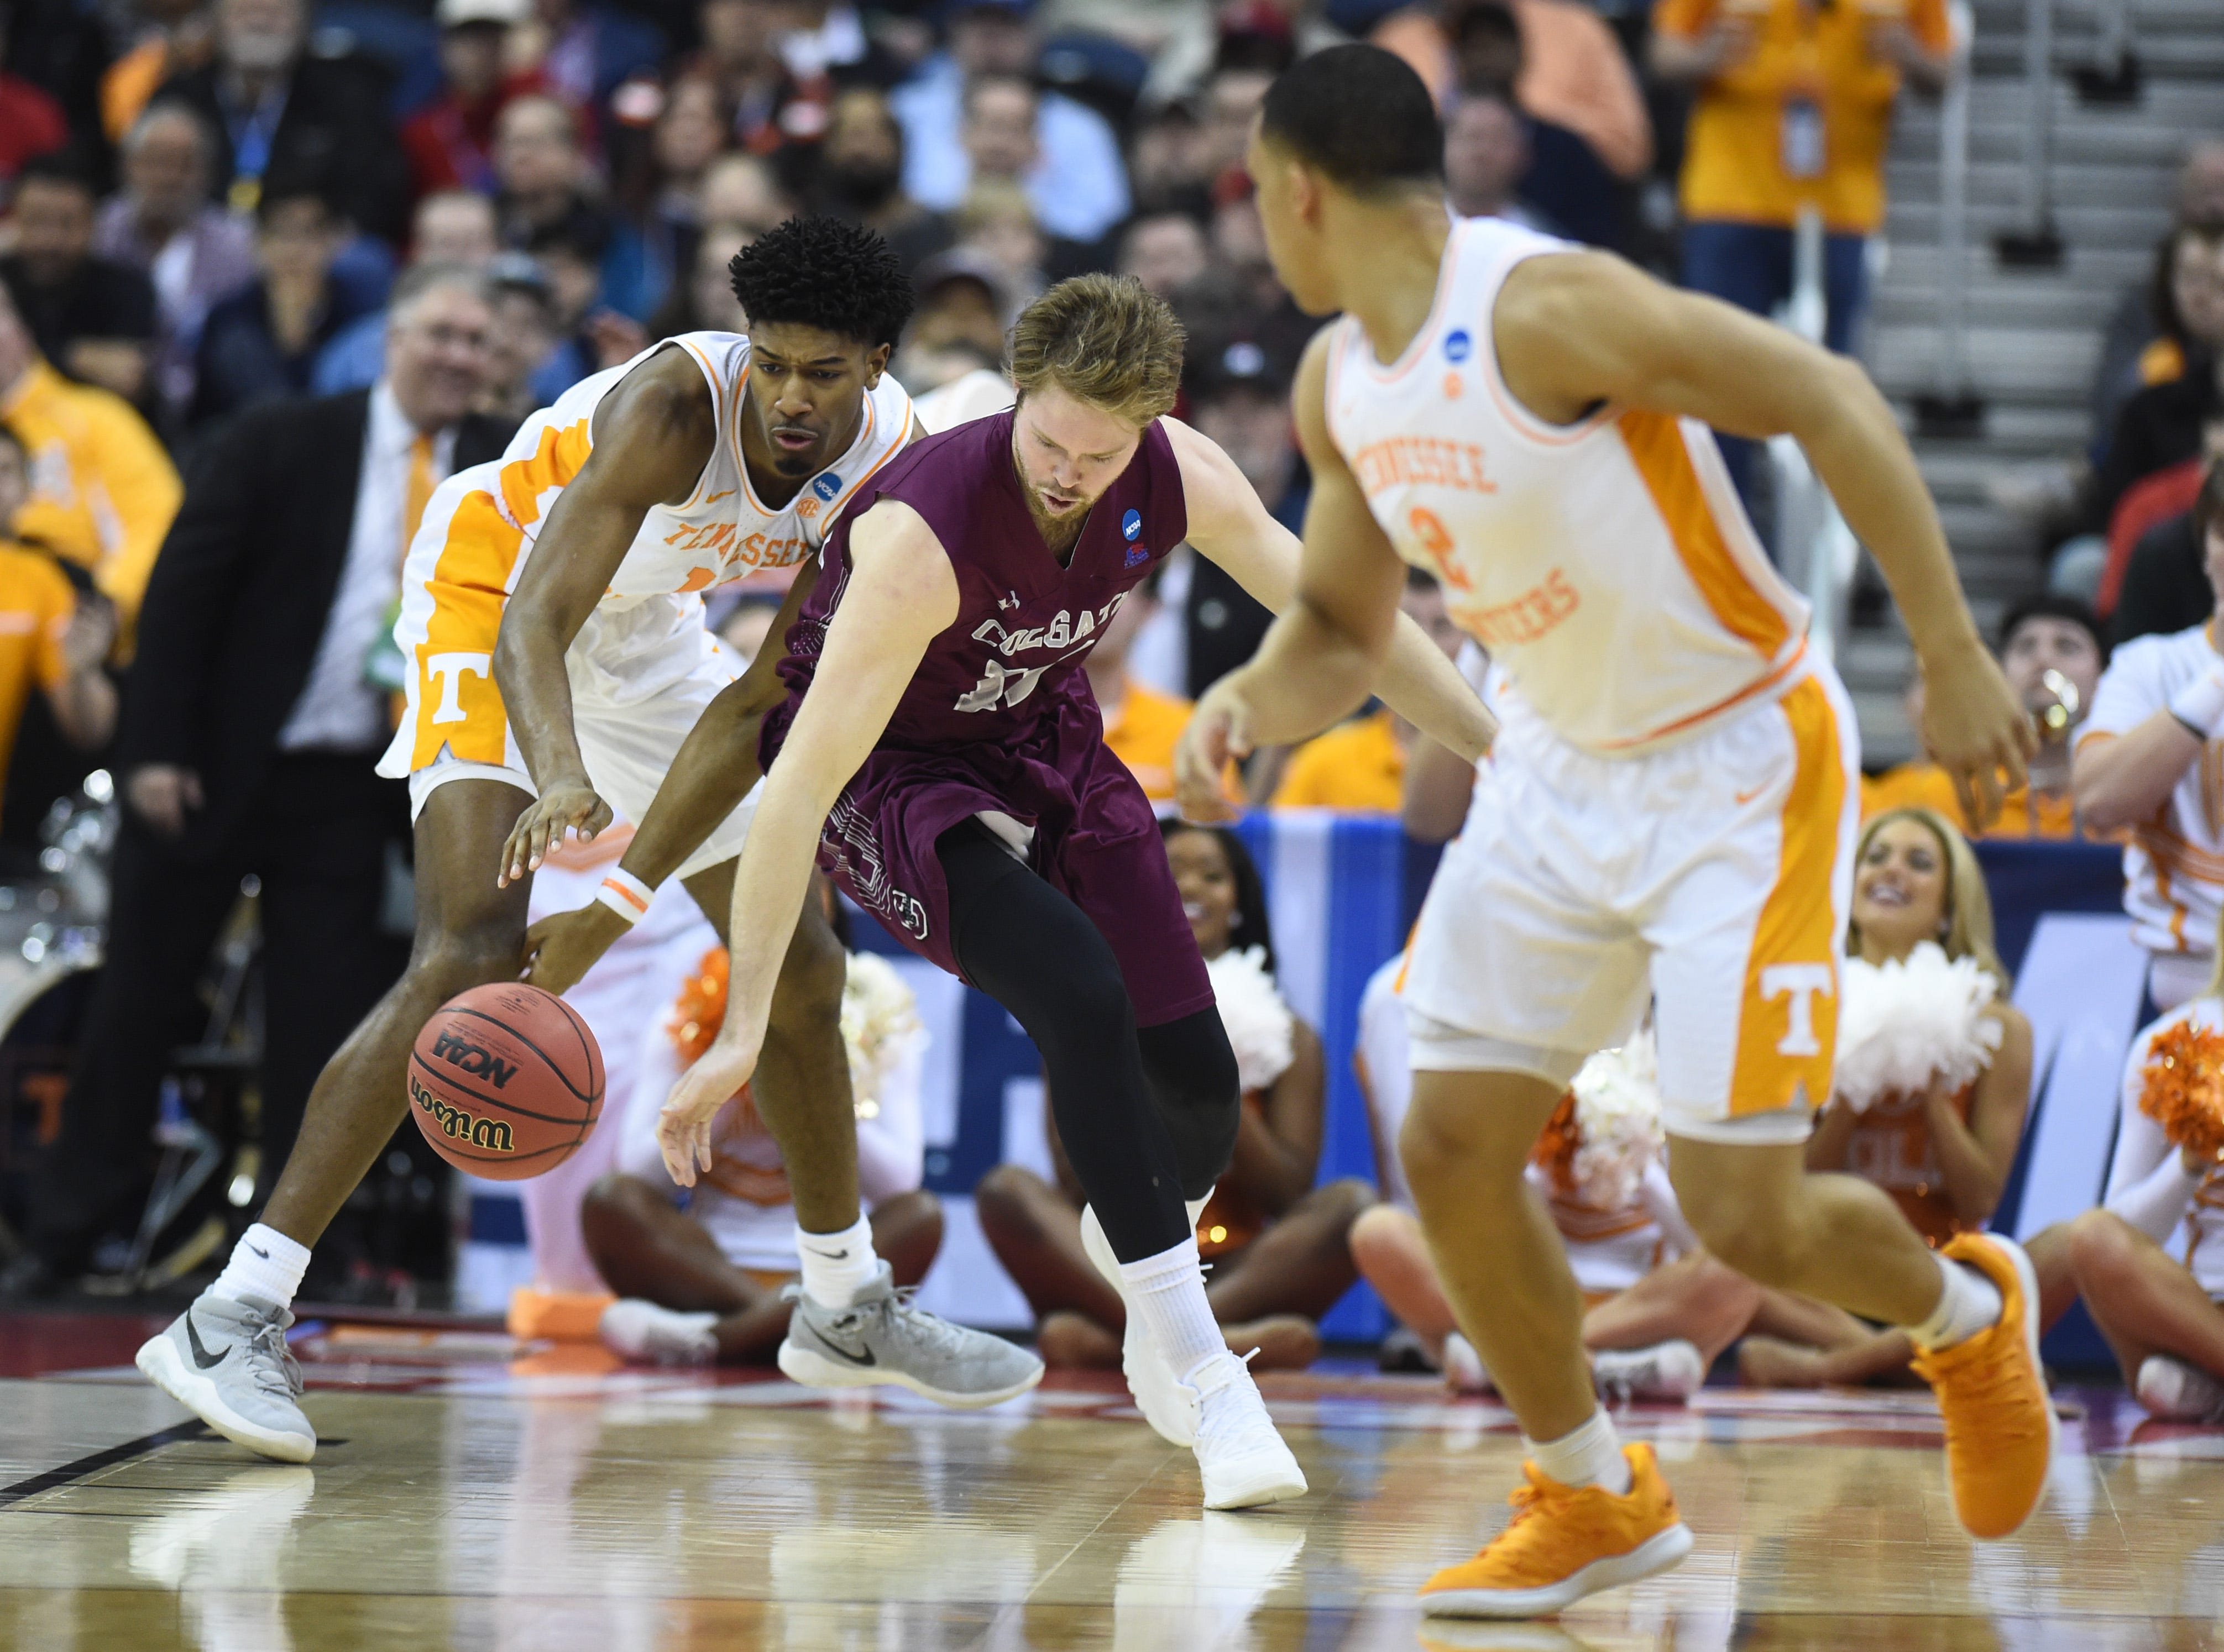 Tennessee forward Kyle Alexander (11) defends against Colgate center Dana Batt (12) during the first round of the NCAA Tournament at Nationwide Arena in Columbus, Ohio, on Friday, March 22, 2019.